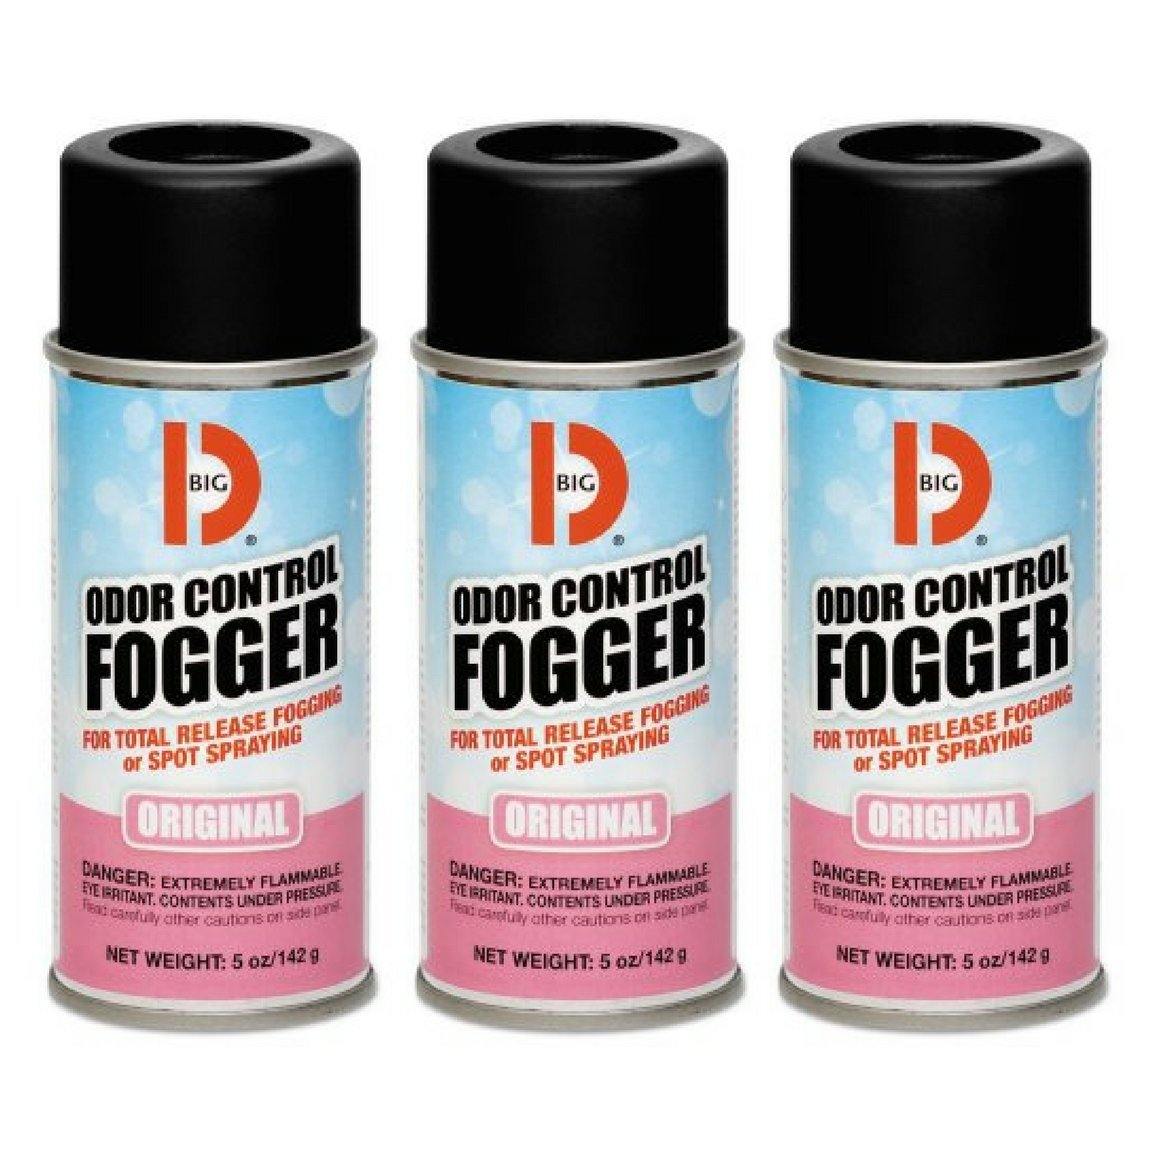 Big D 341 Odor Control Fogger, Original Fragrance, 5 oz (Pack of 12) - Kills odors from fire, flood, decomposition, skunk, cigarettes,musty smells - Ideal for use in cars,management , hotels - 3 Packs